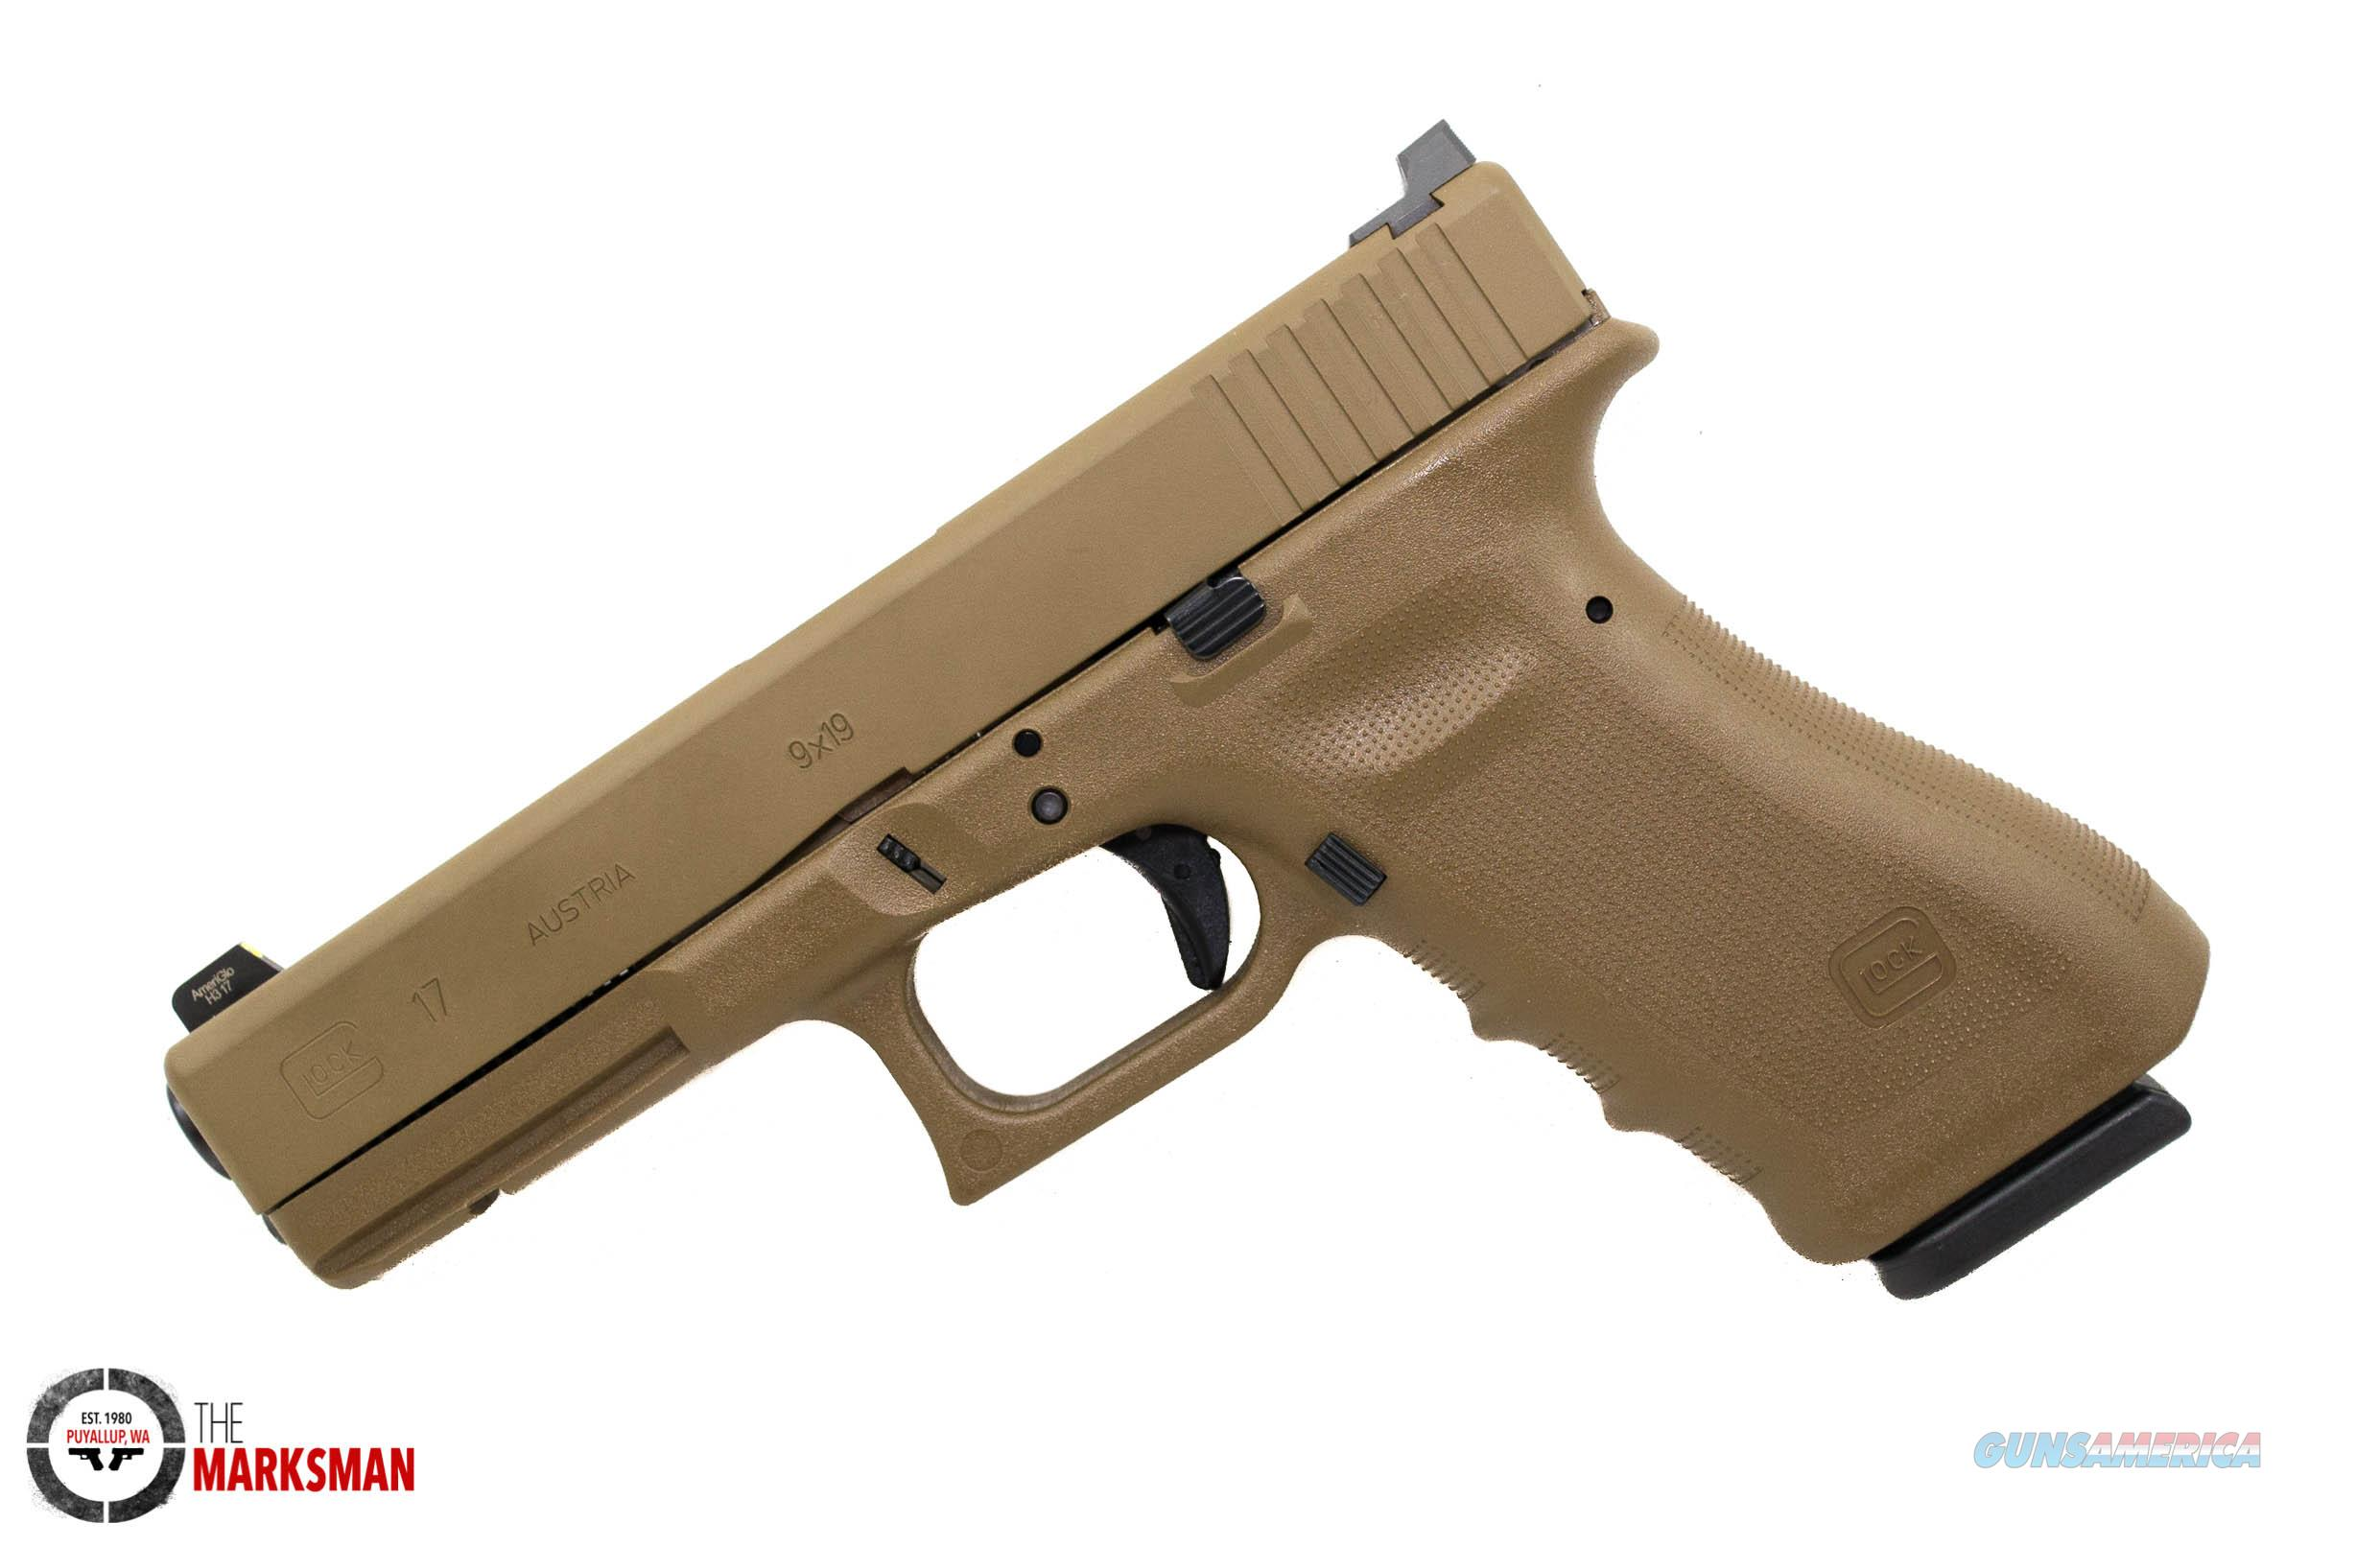 Glock 17 RTF2, 9mm, Lipsey's/Vickers Tactical Exclusive, FDE NEW  Guns > Pistols > Glock Pistols > 17